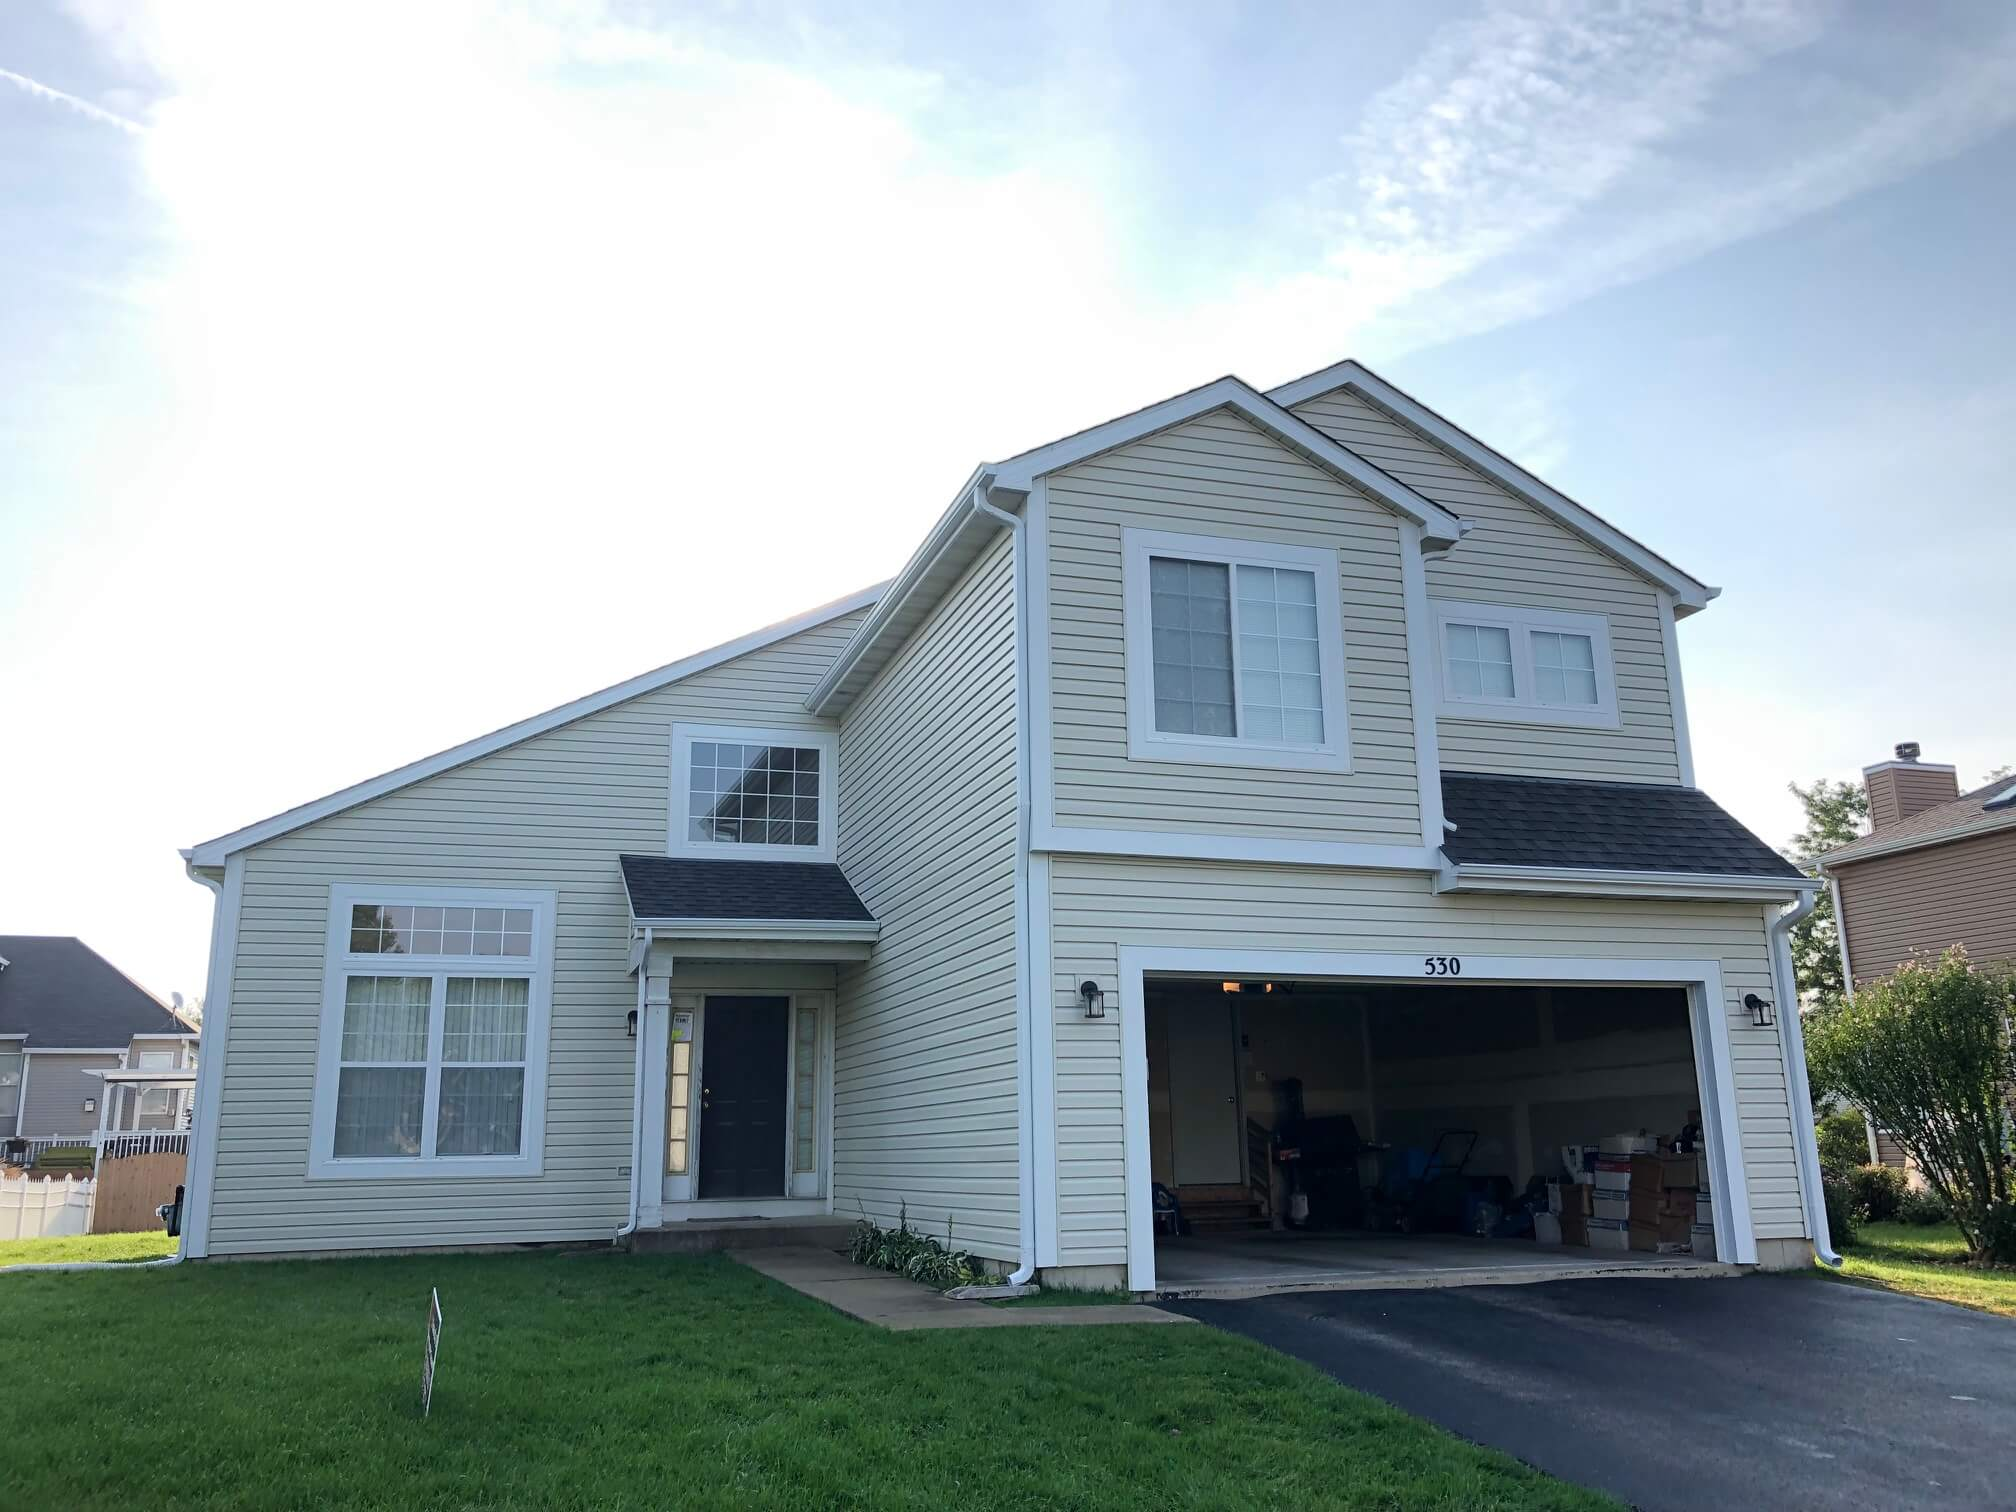 Residential Vinyl Full Siding Replacement by Promar Exteriors